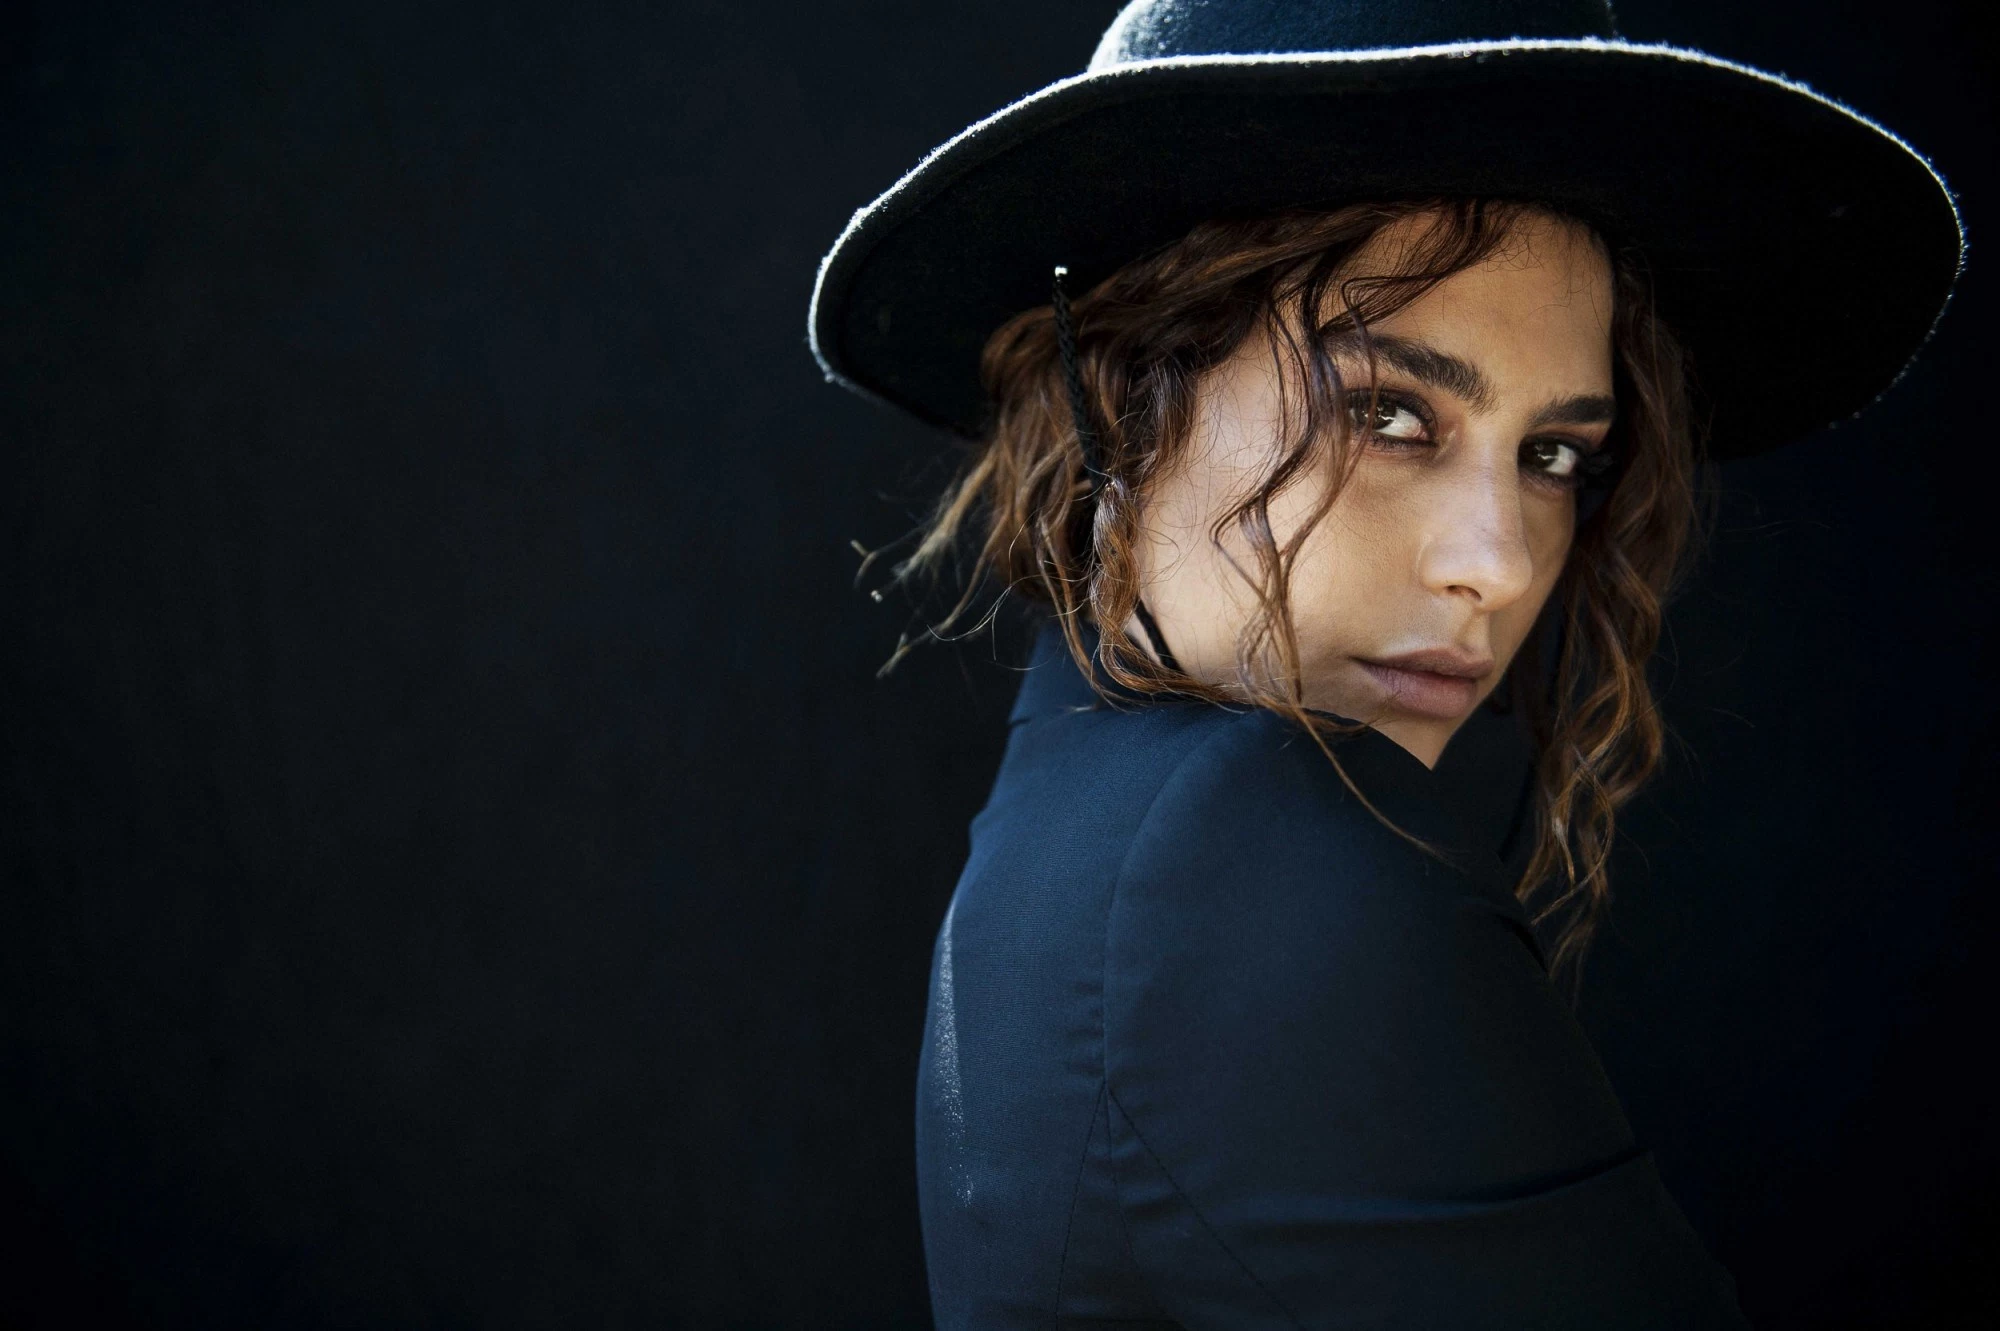 Nadia Hilker Wallpapers Images Photos Pictures Backgrounds